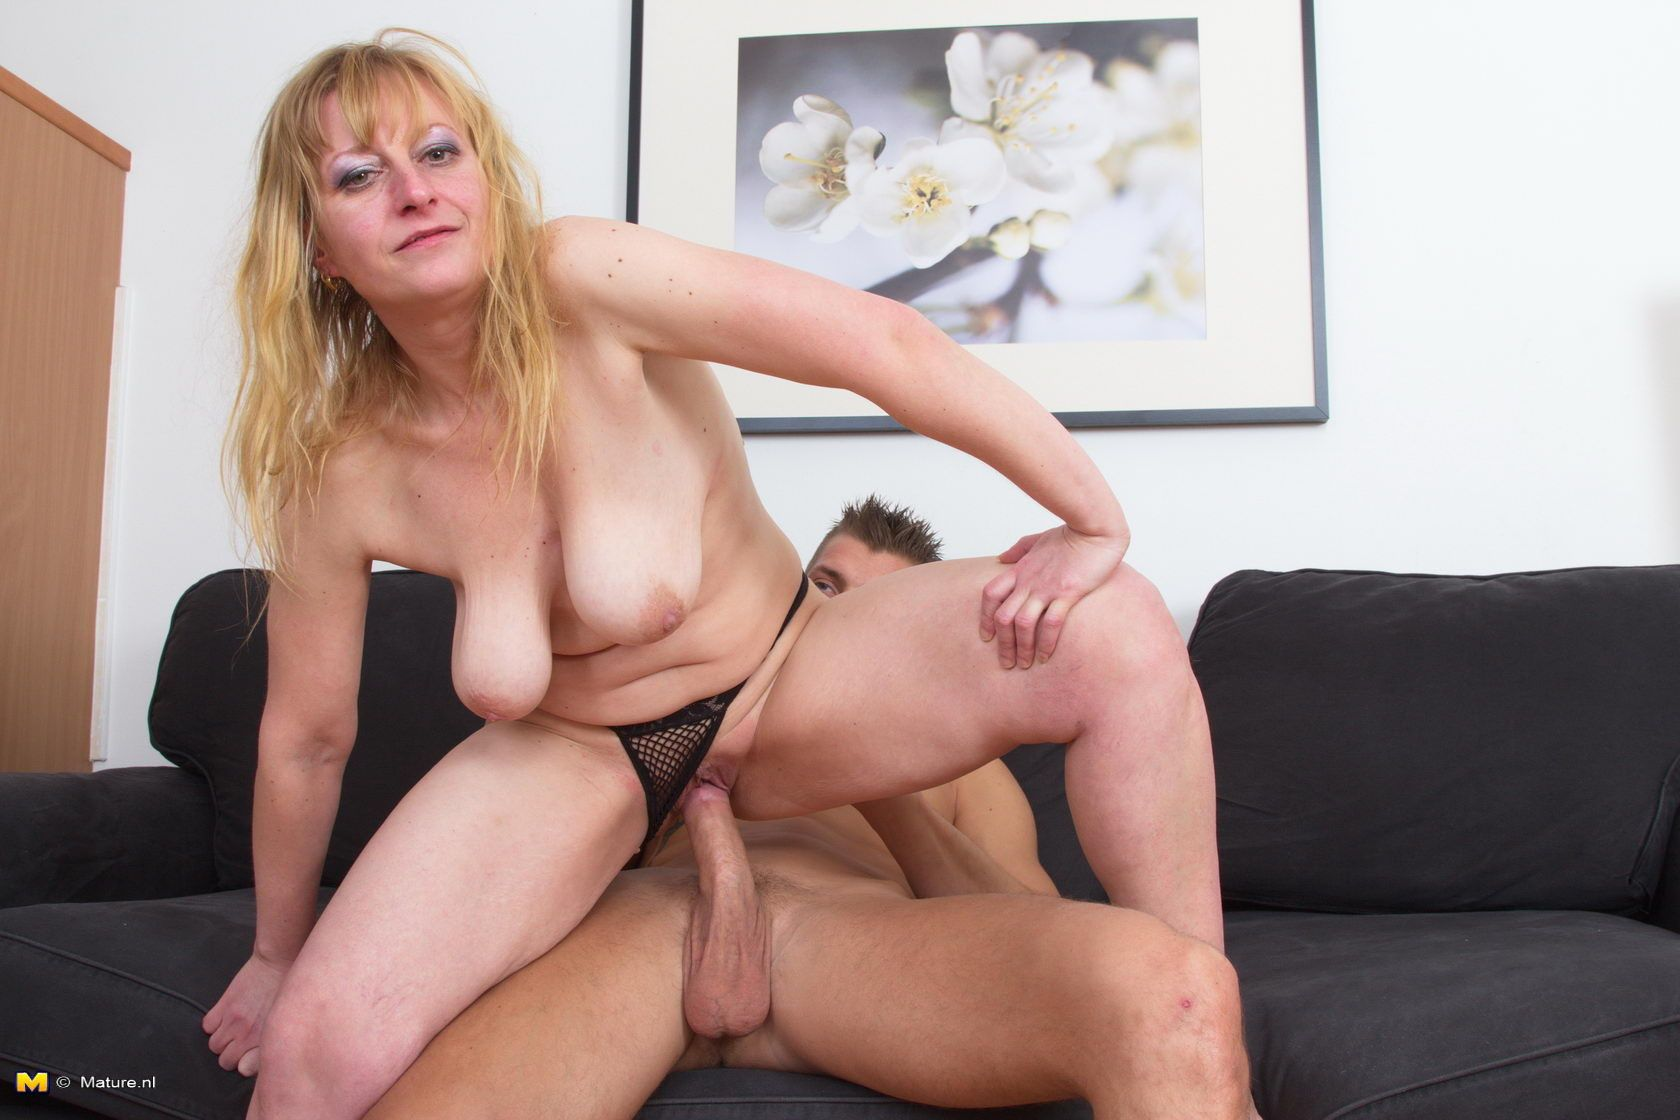 Consider, horny milf housewife simply magnificent